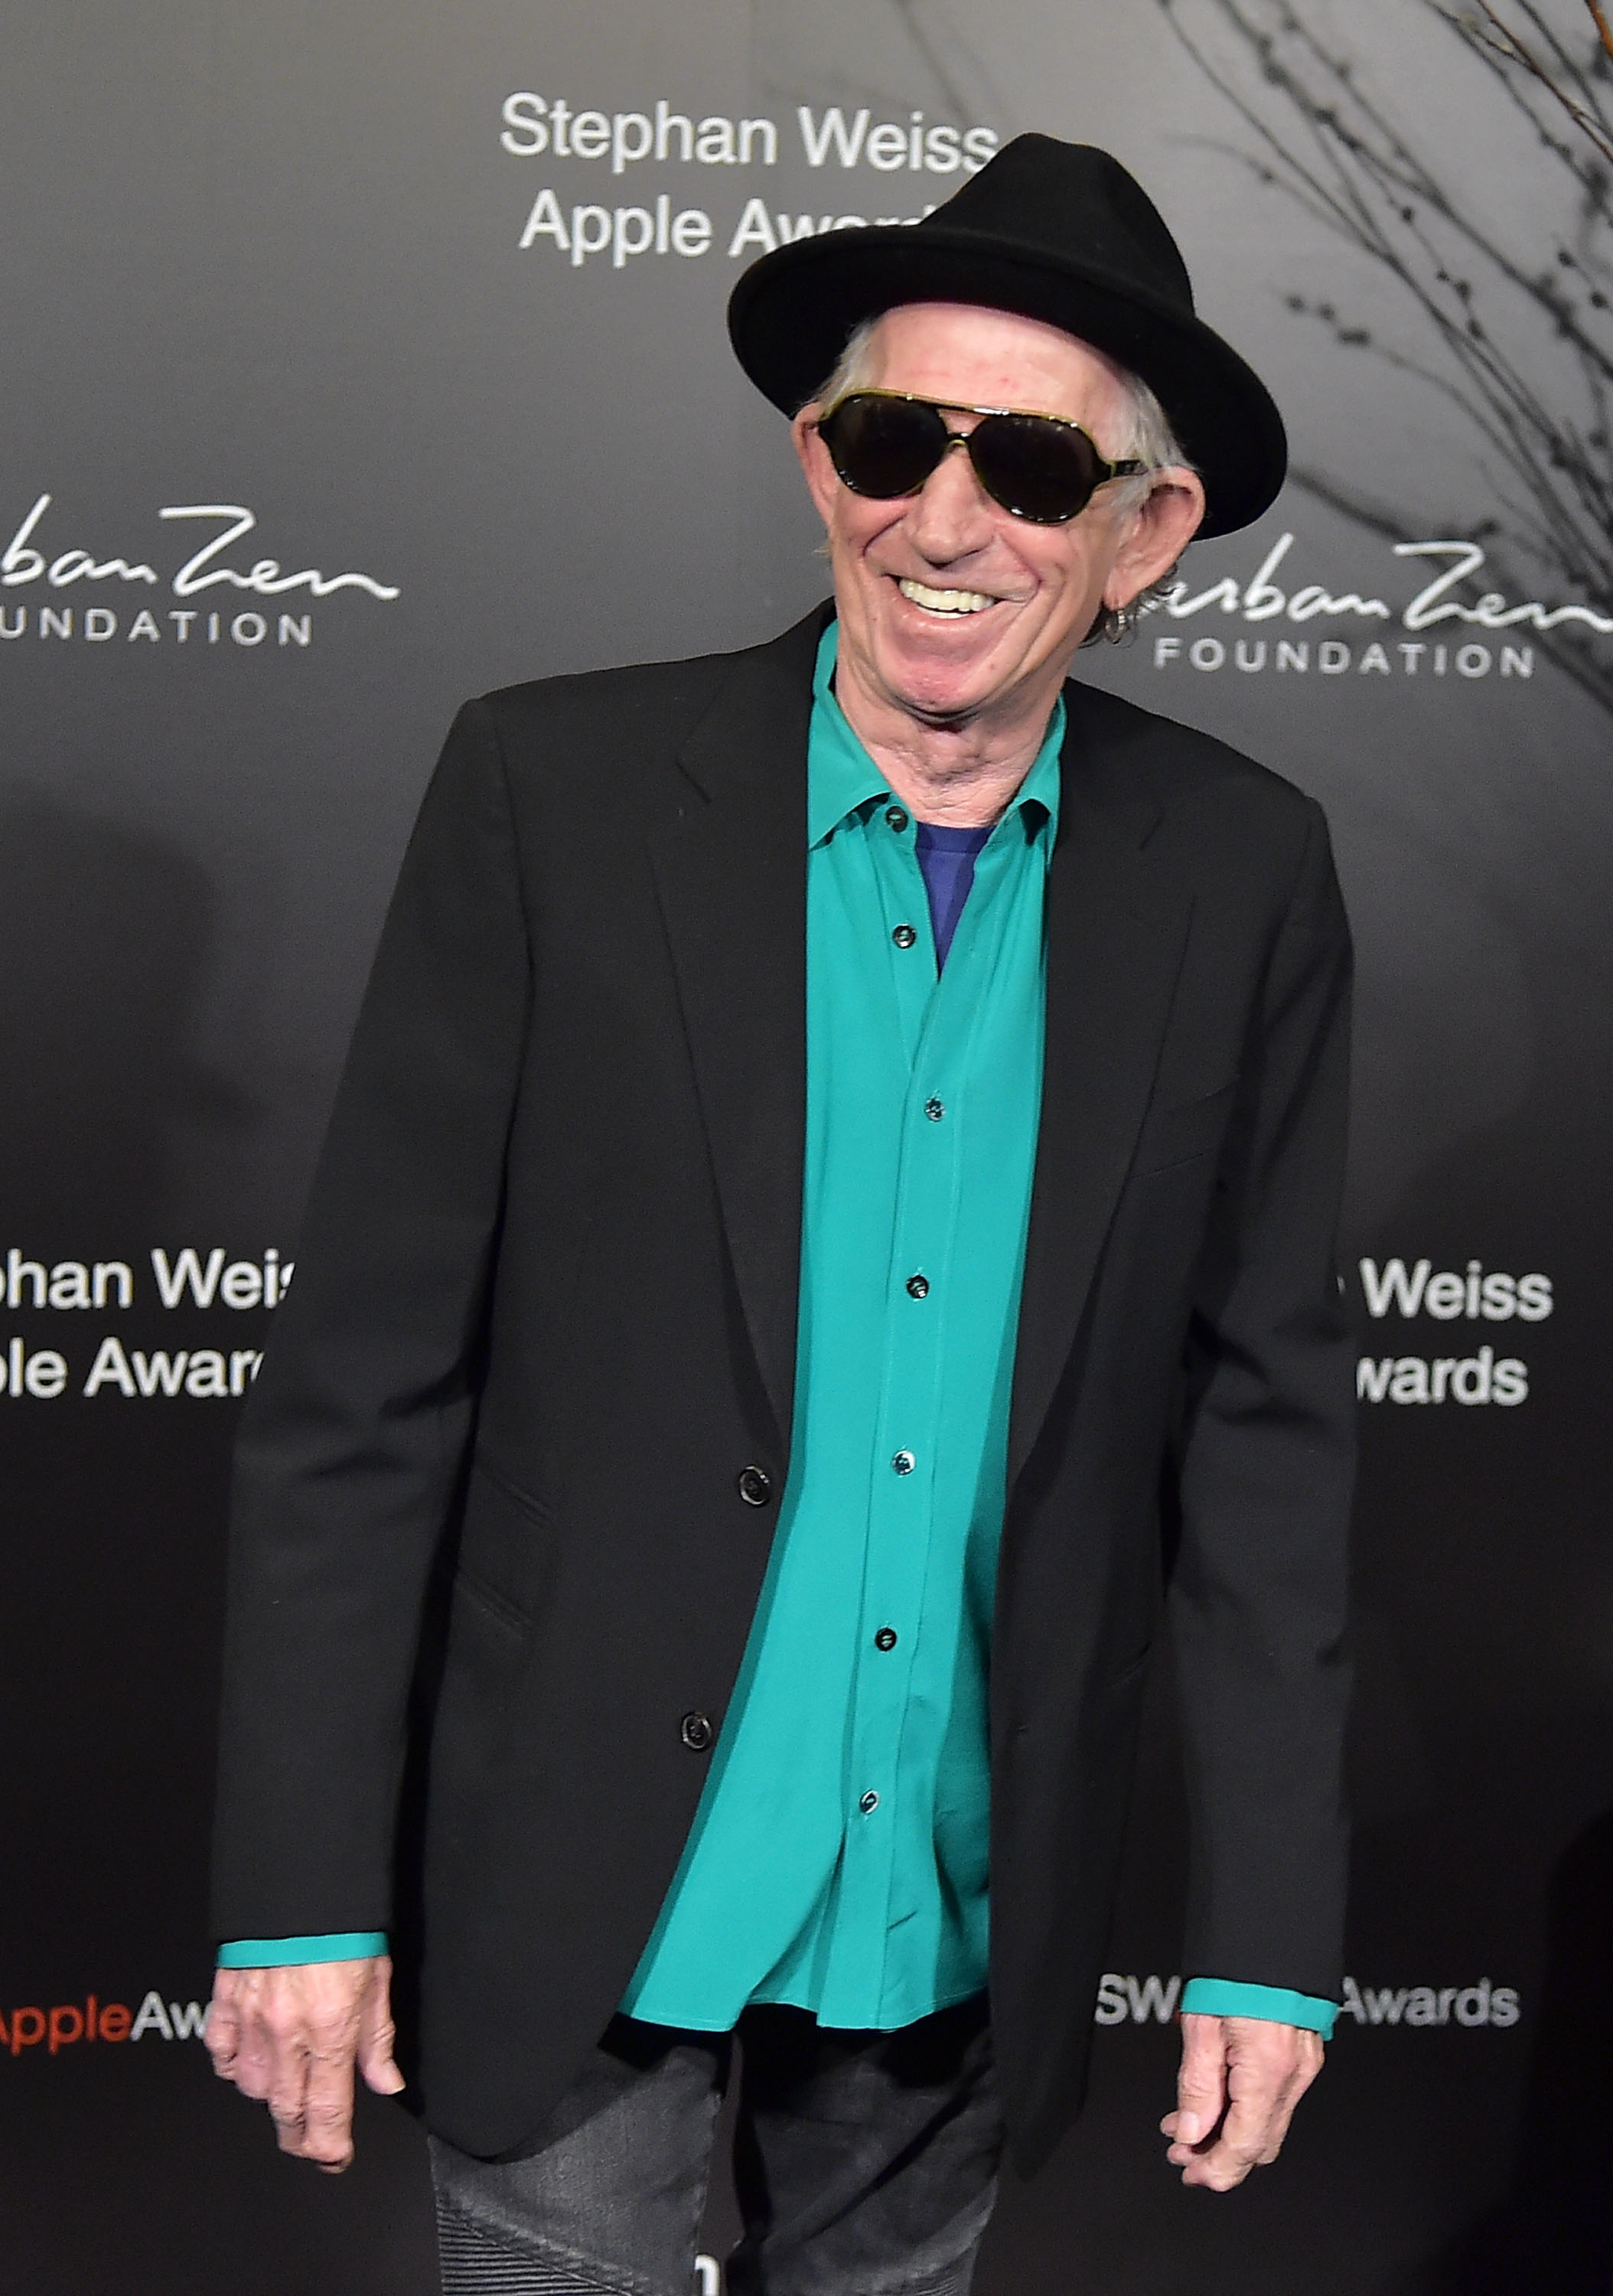 NEW YORK, NY - OCTOBER 24:  Keith Richards attends the 2018 Stephan Weiss Apple Awards at Stephan Weiss Studio on October 24, 2018 in New York City.  (Photo by Theo Wargo/Getty Images)